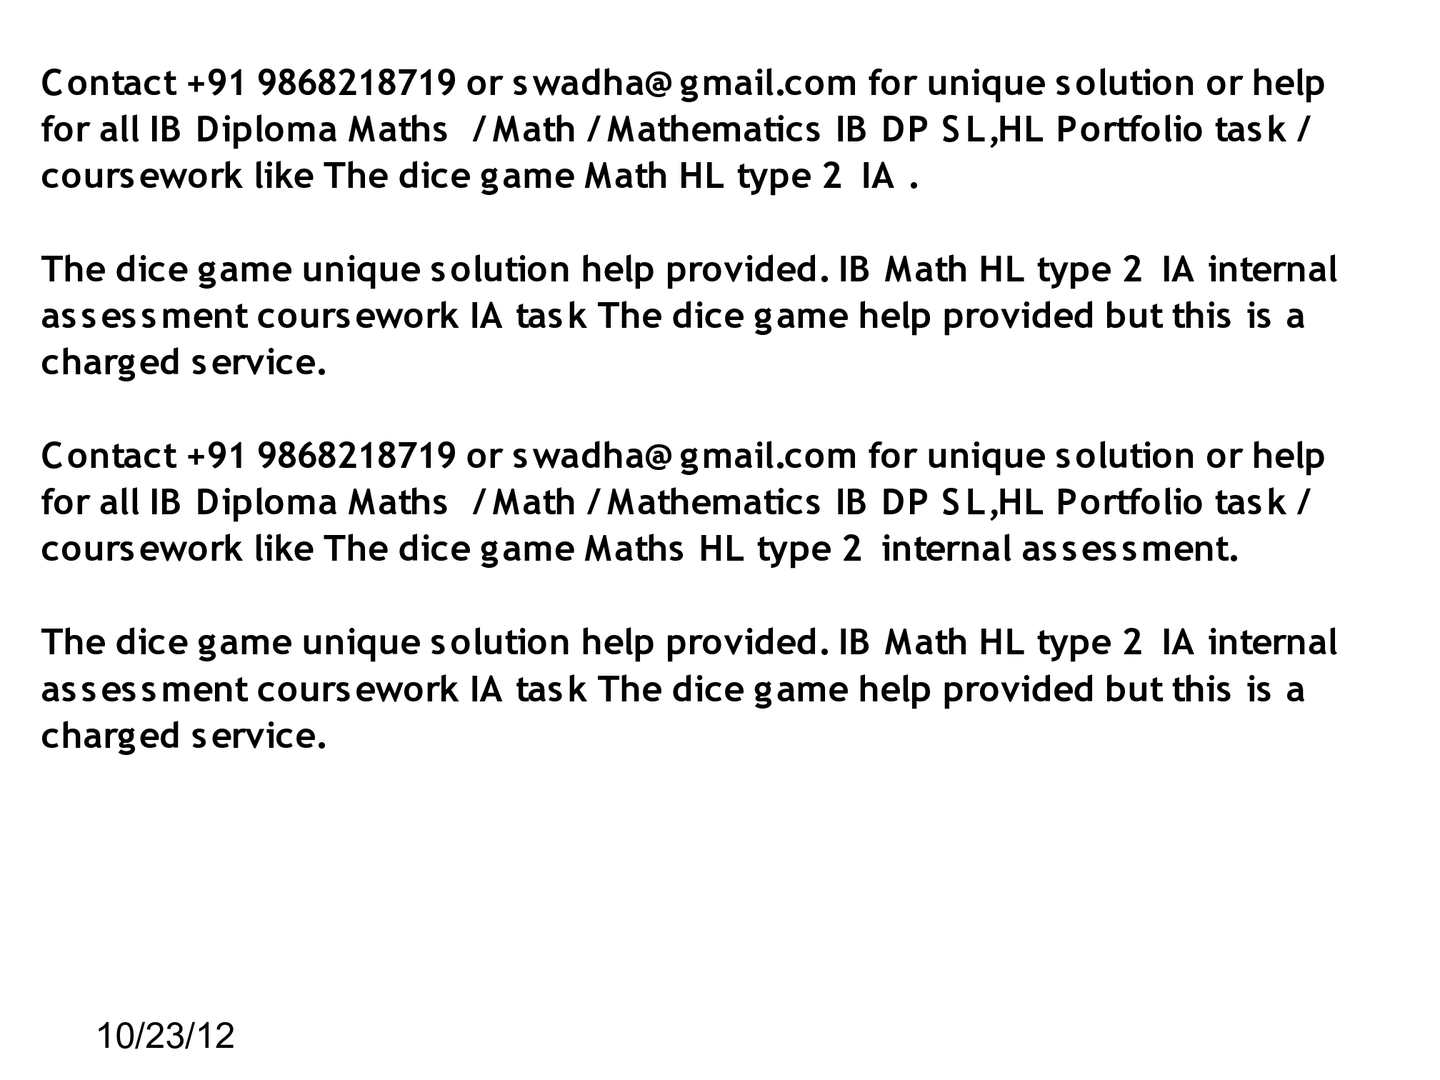 Ib mathematics hl coursework type ii – the dice game Coursework